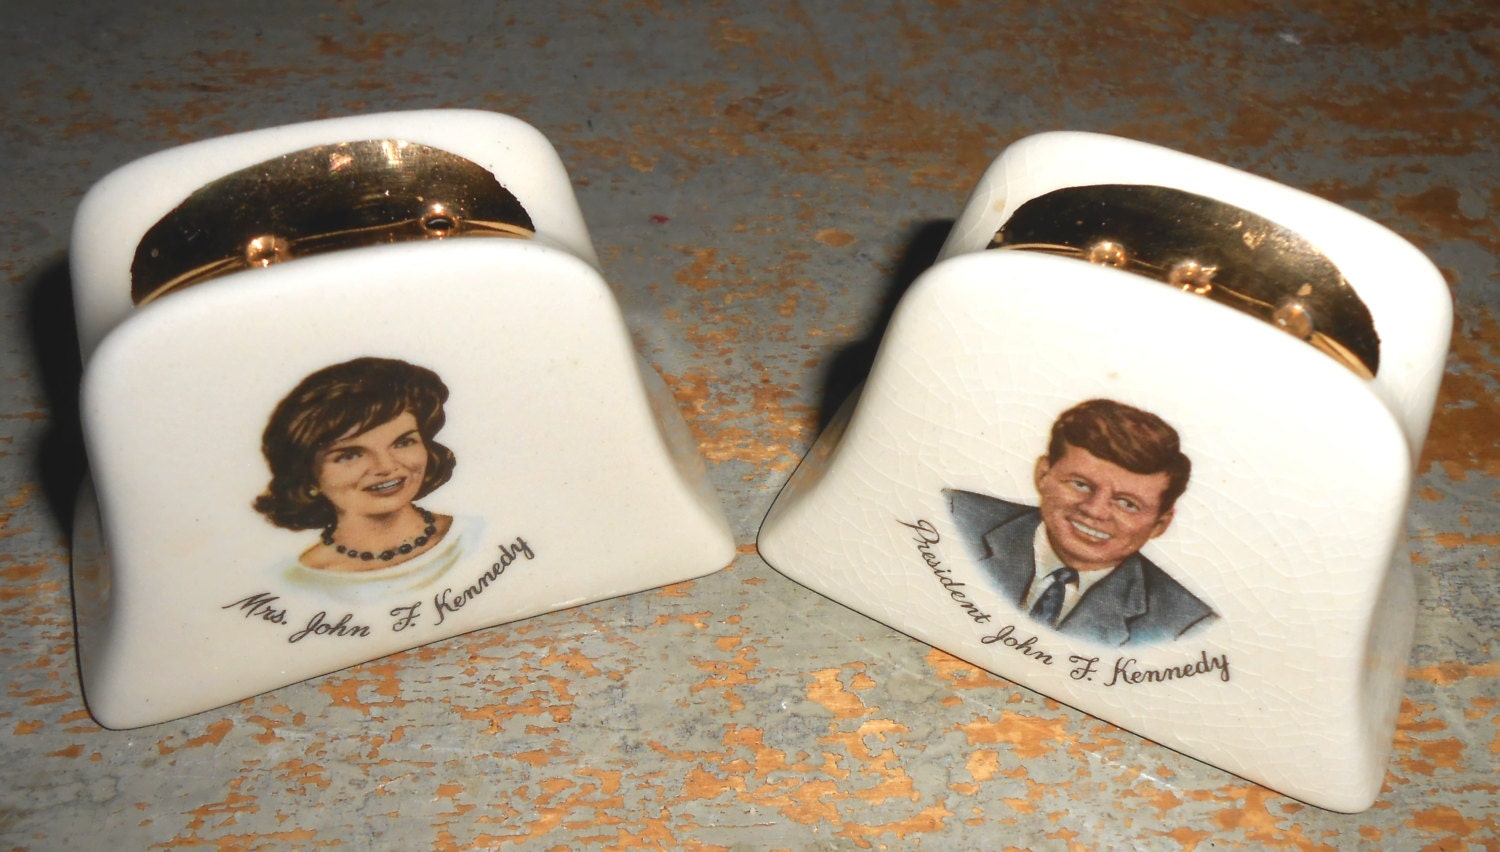 Vintage Salt Amp Pepper Shakers Mr And Mrs Kennedy White